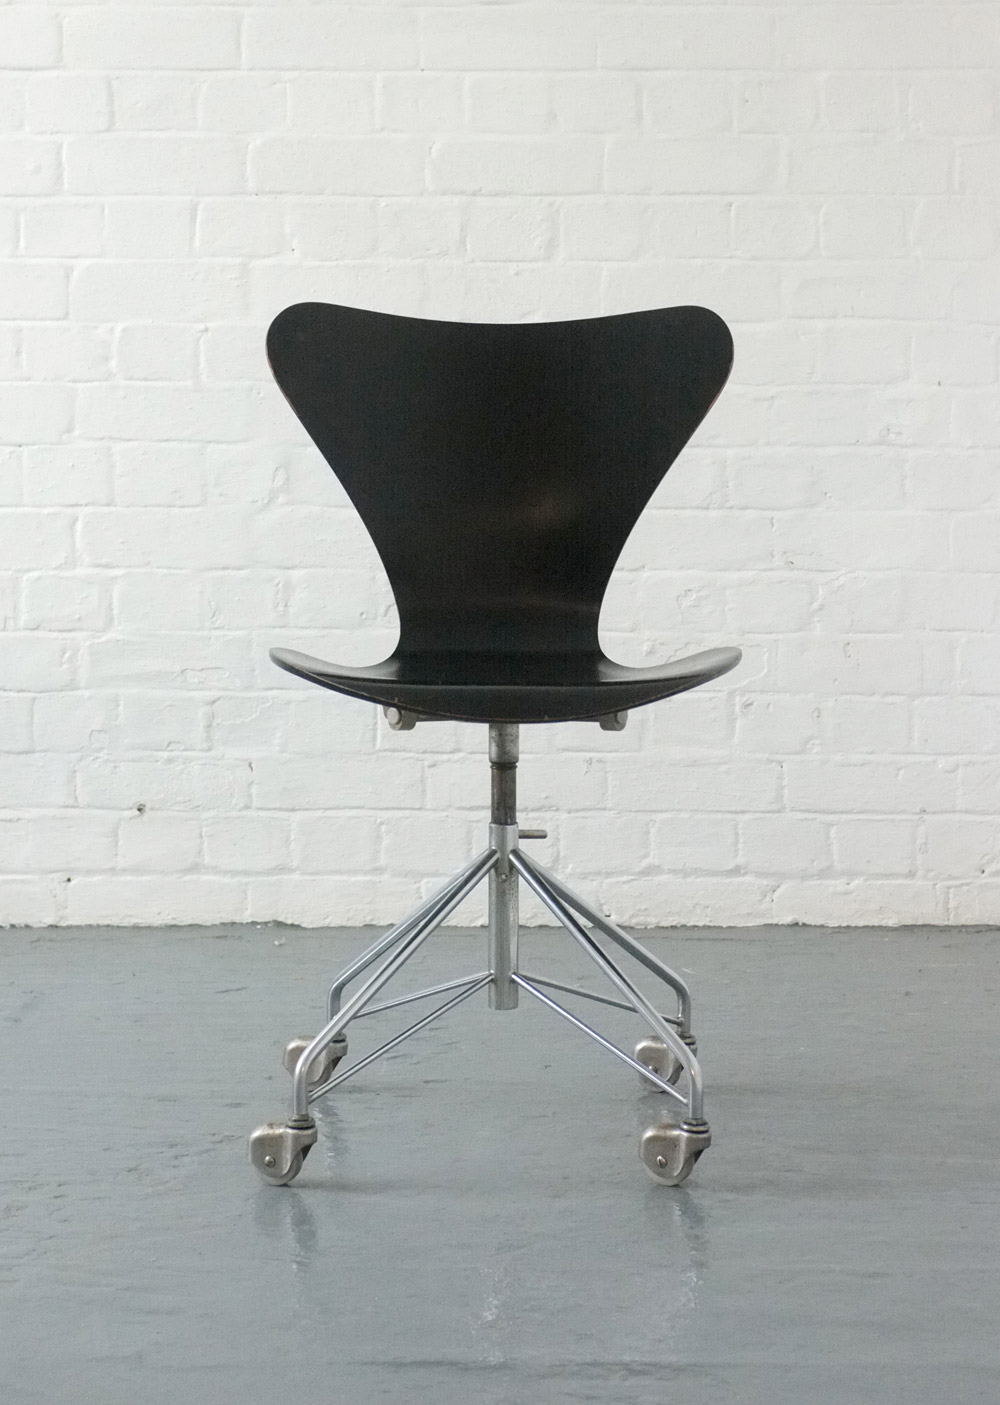 3107 swivel desk chair by Arne Jacobsen